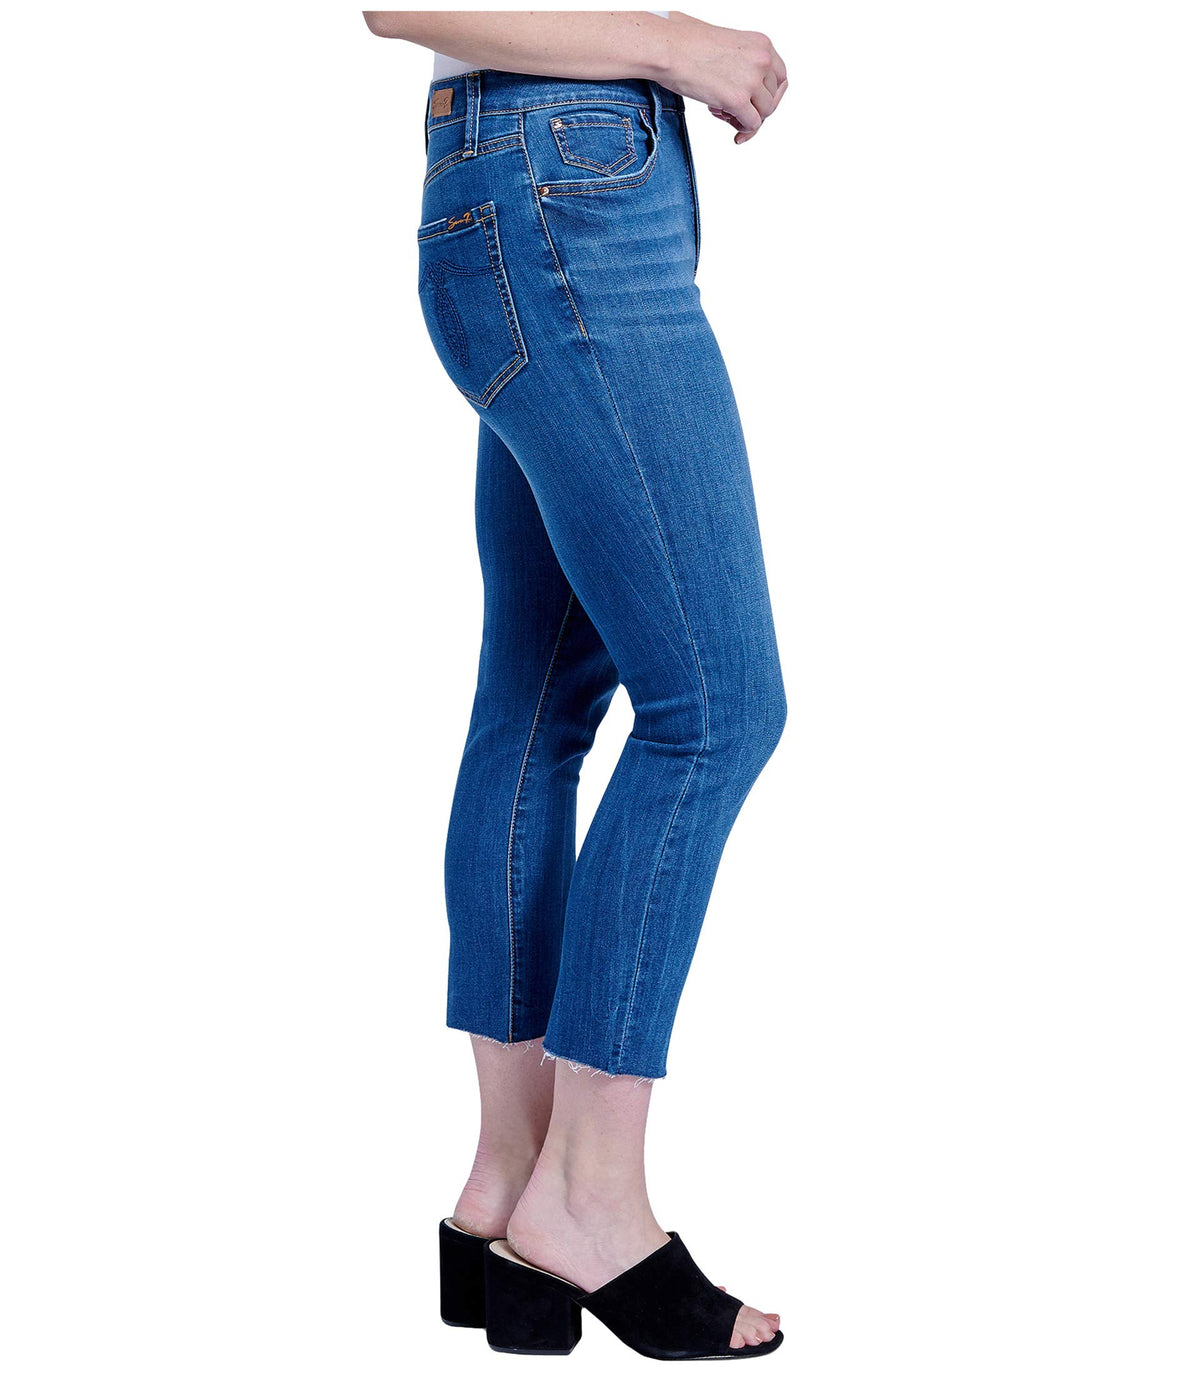 "25"" Breezy Crop Jeans w/ Raw Hem in Euphoria"